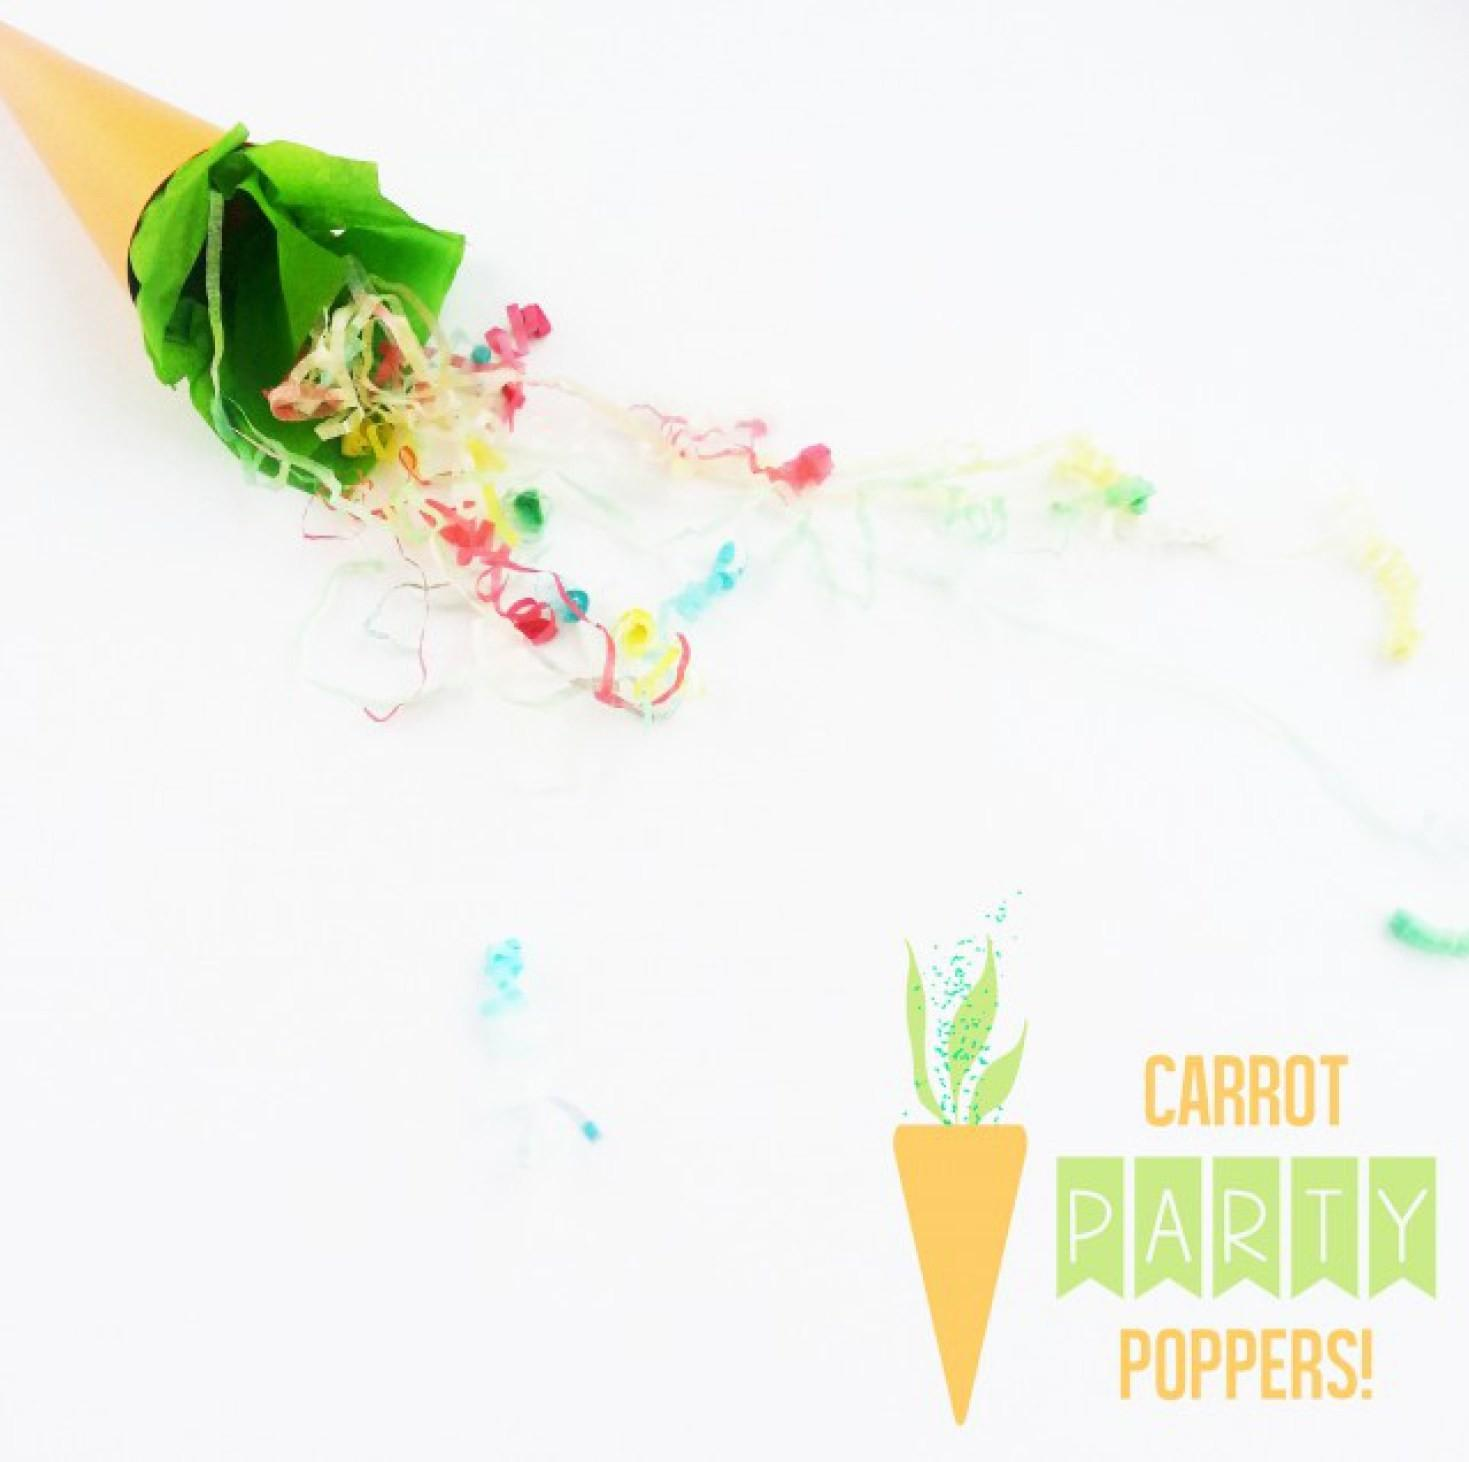 Easter Carrot Party Poppers Joyful Riot